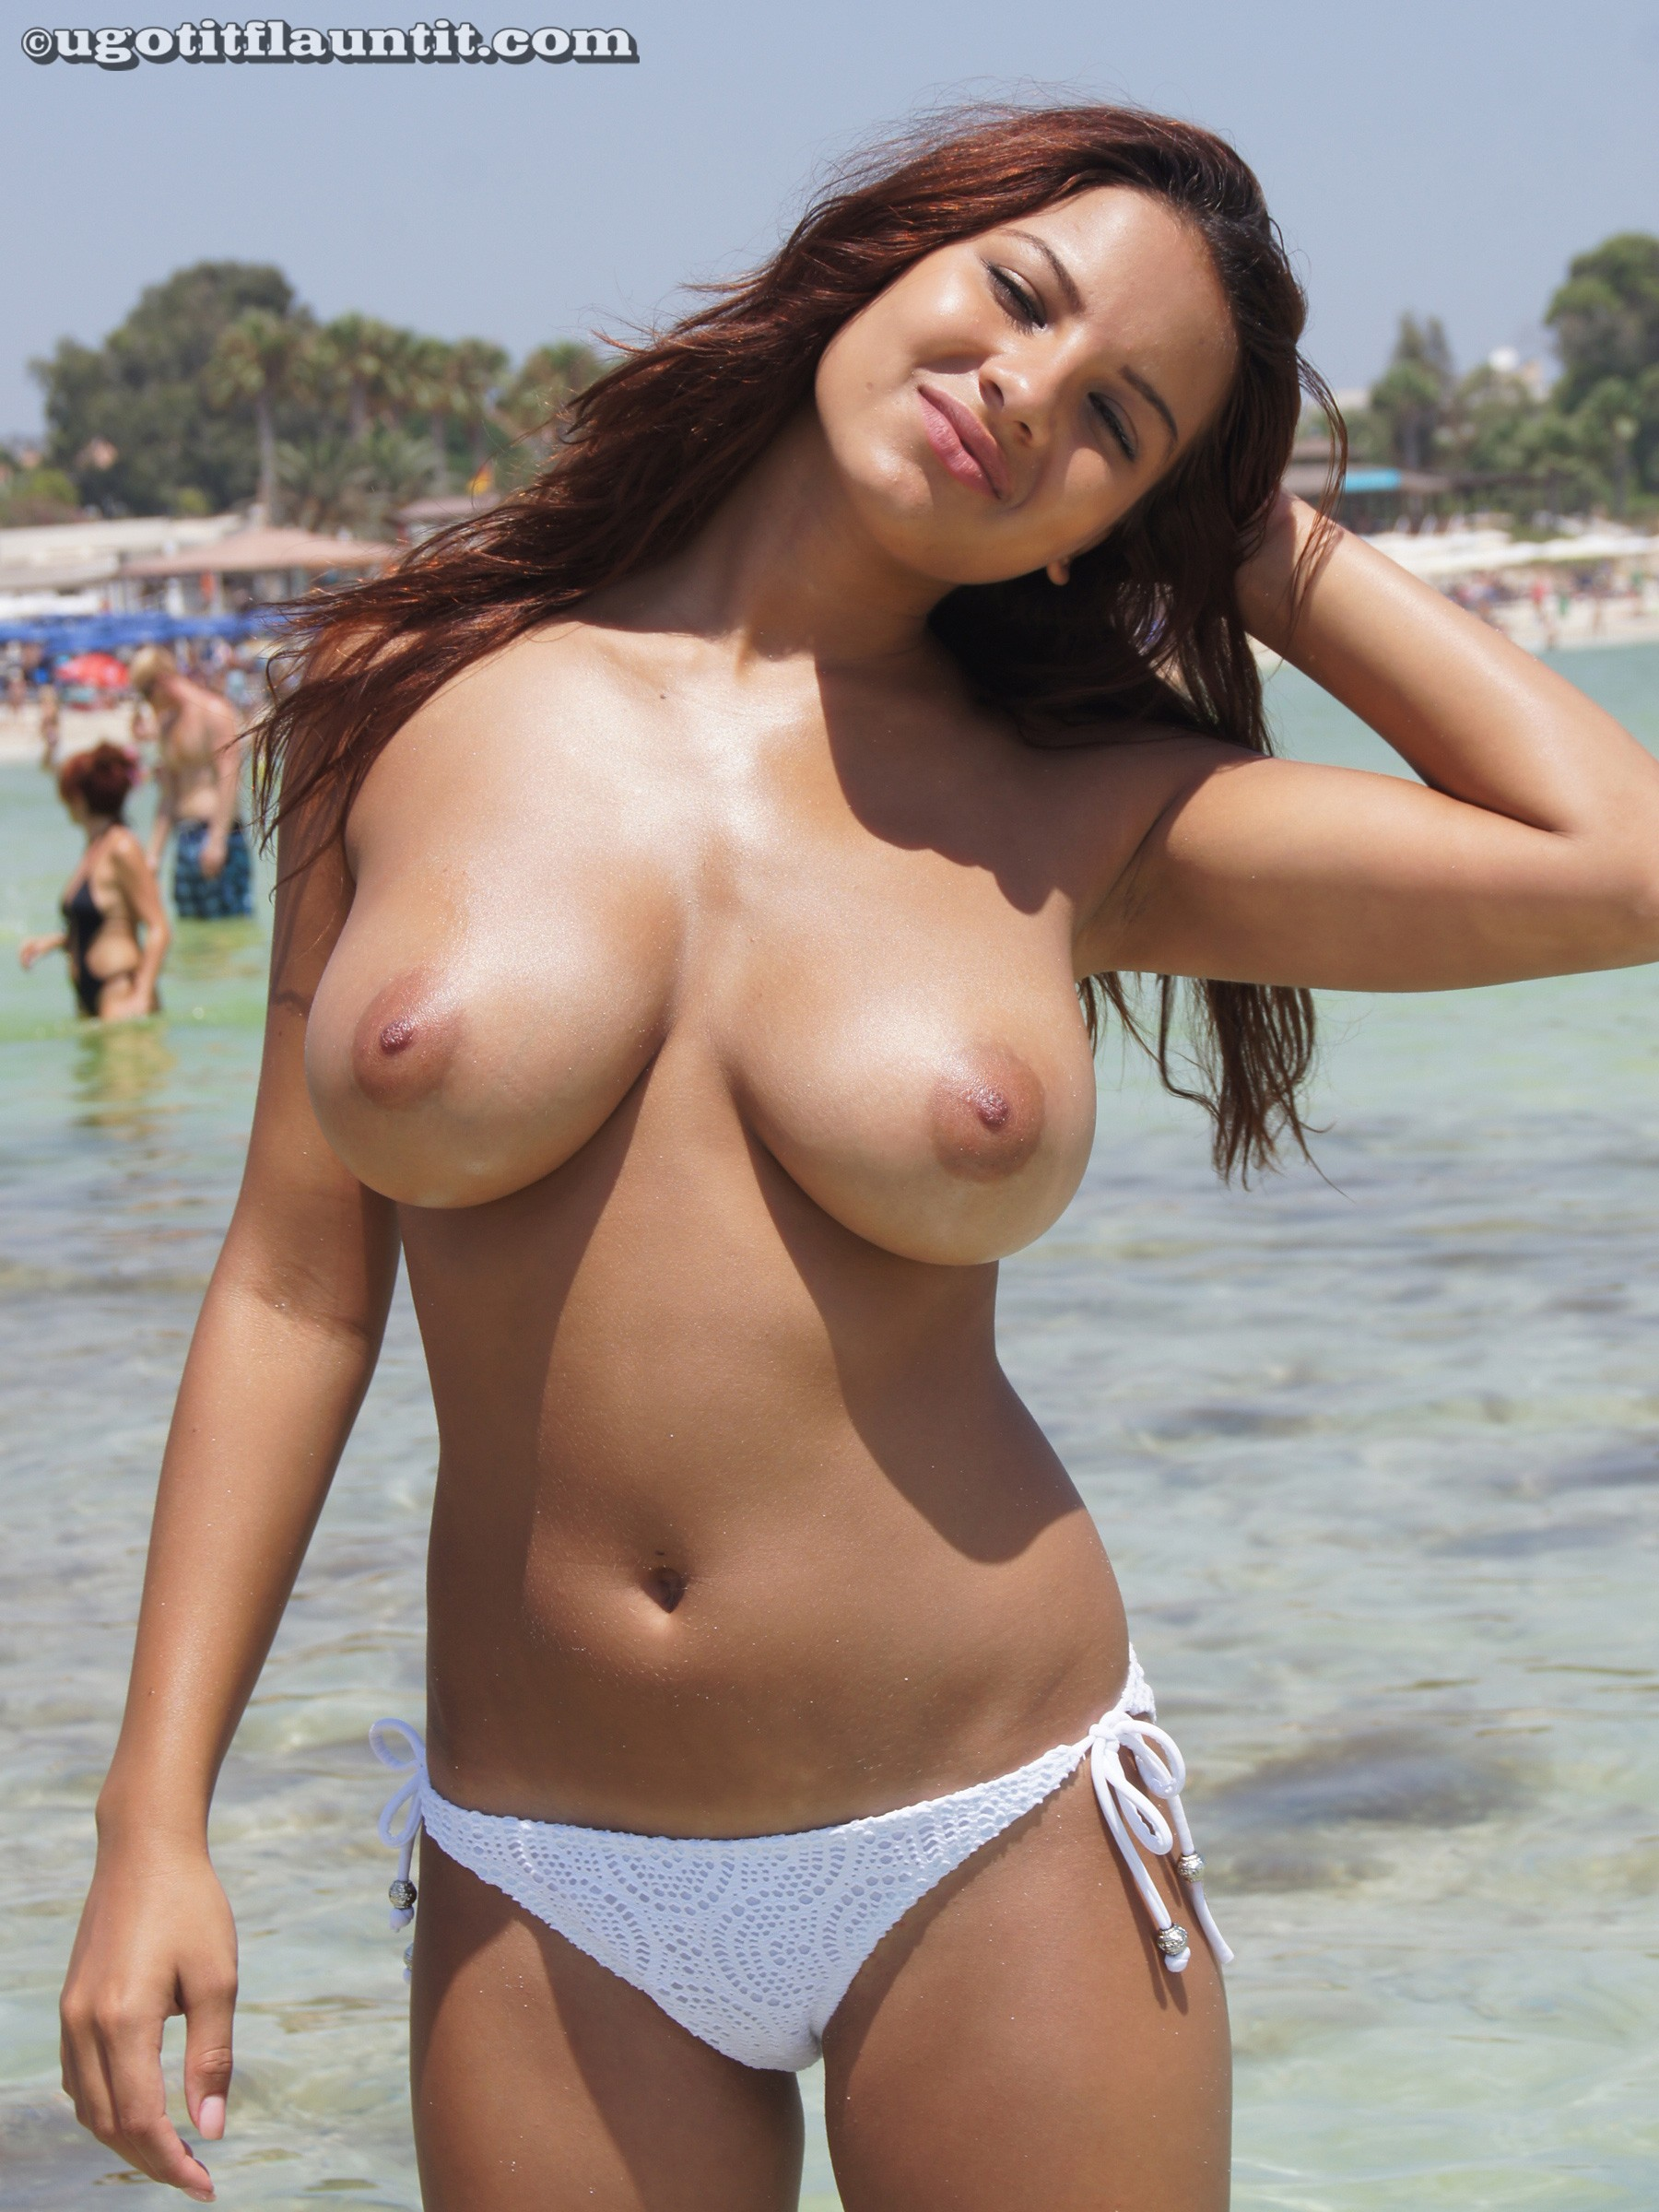 Nute fille pic